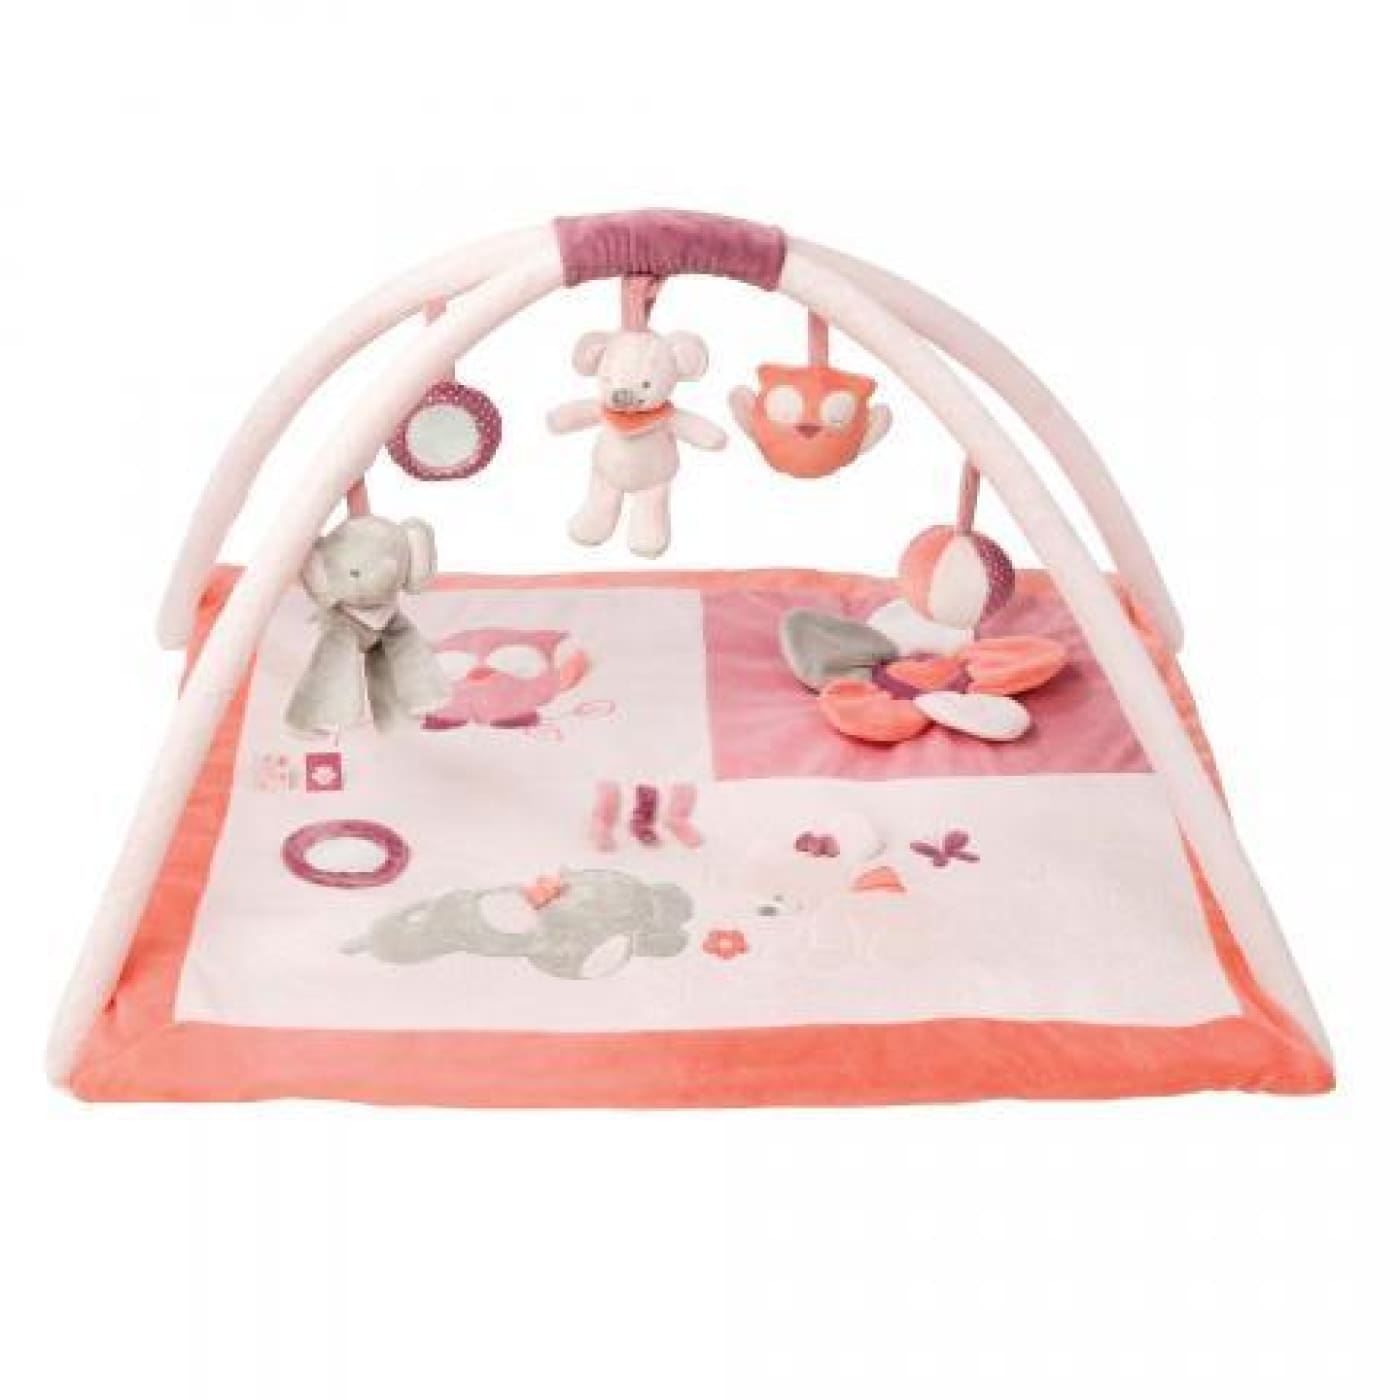 Nattou Adele & Valentine - Playmat With Arches PINK - TOYS & PLAY - PLAY MATS/GYMS